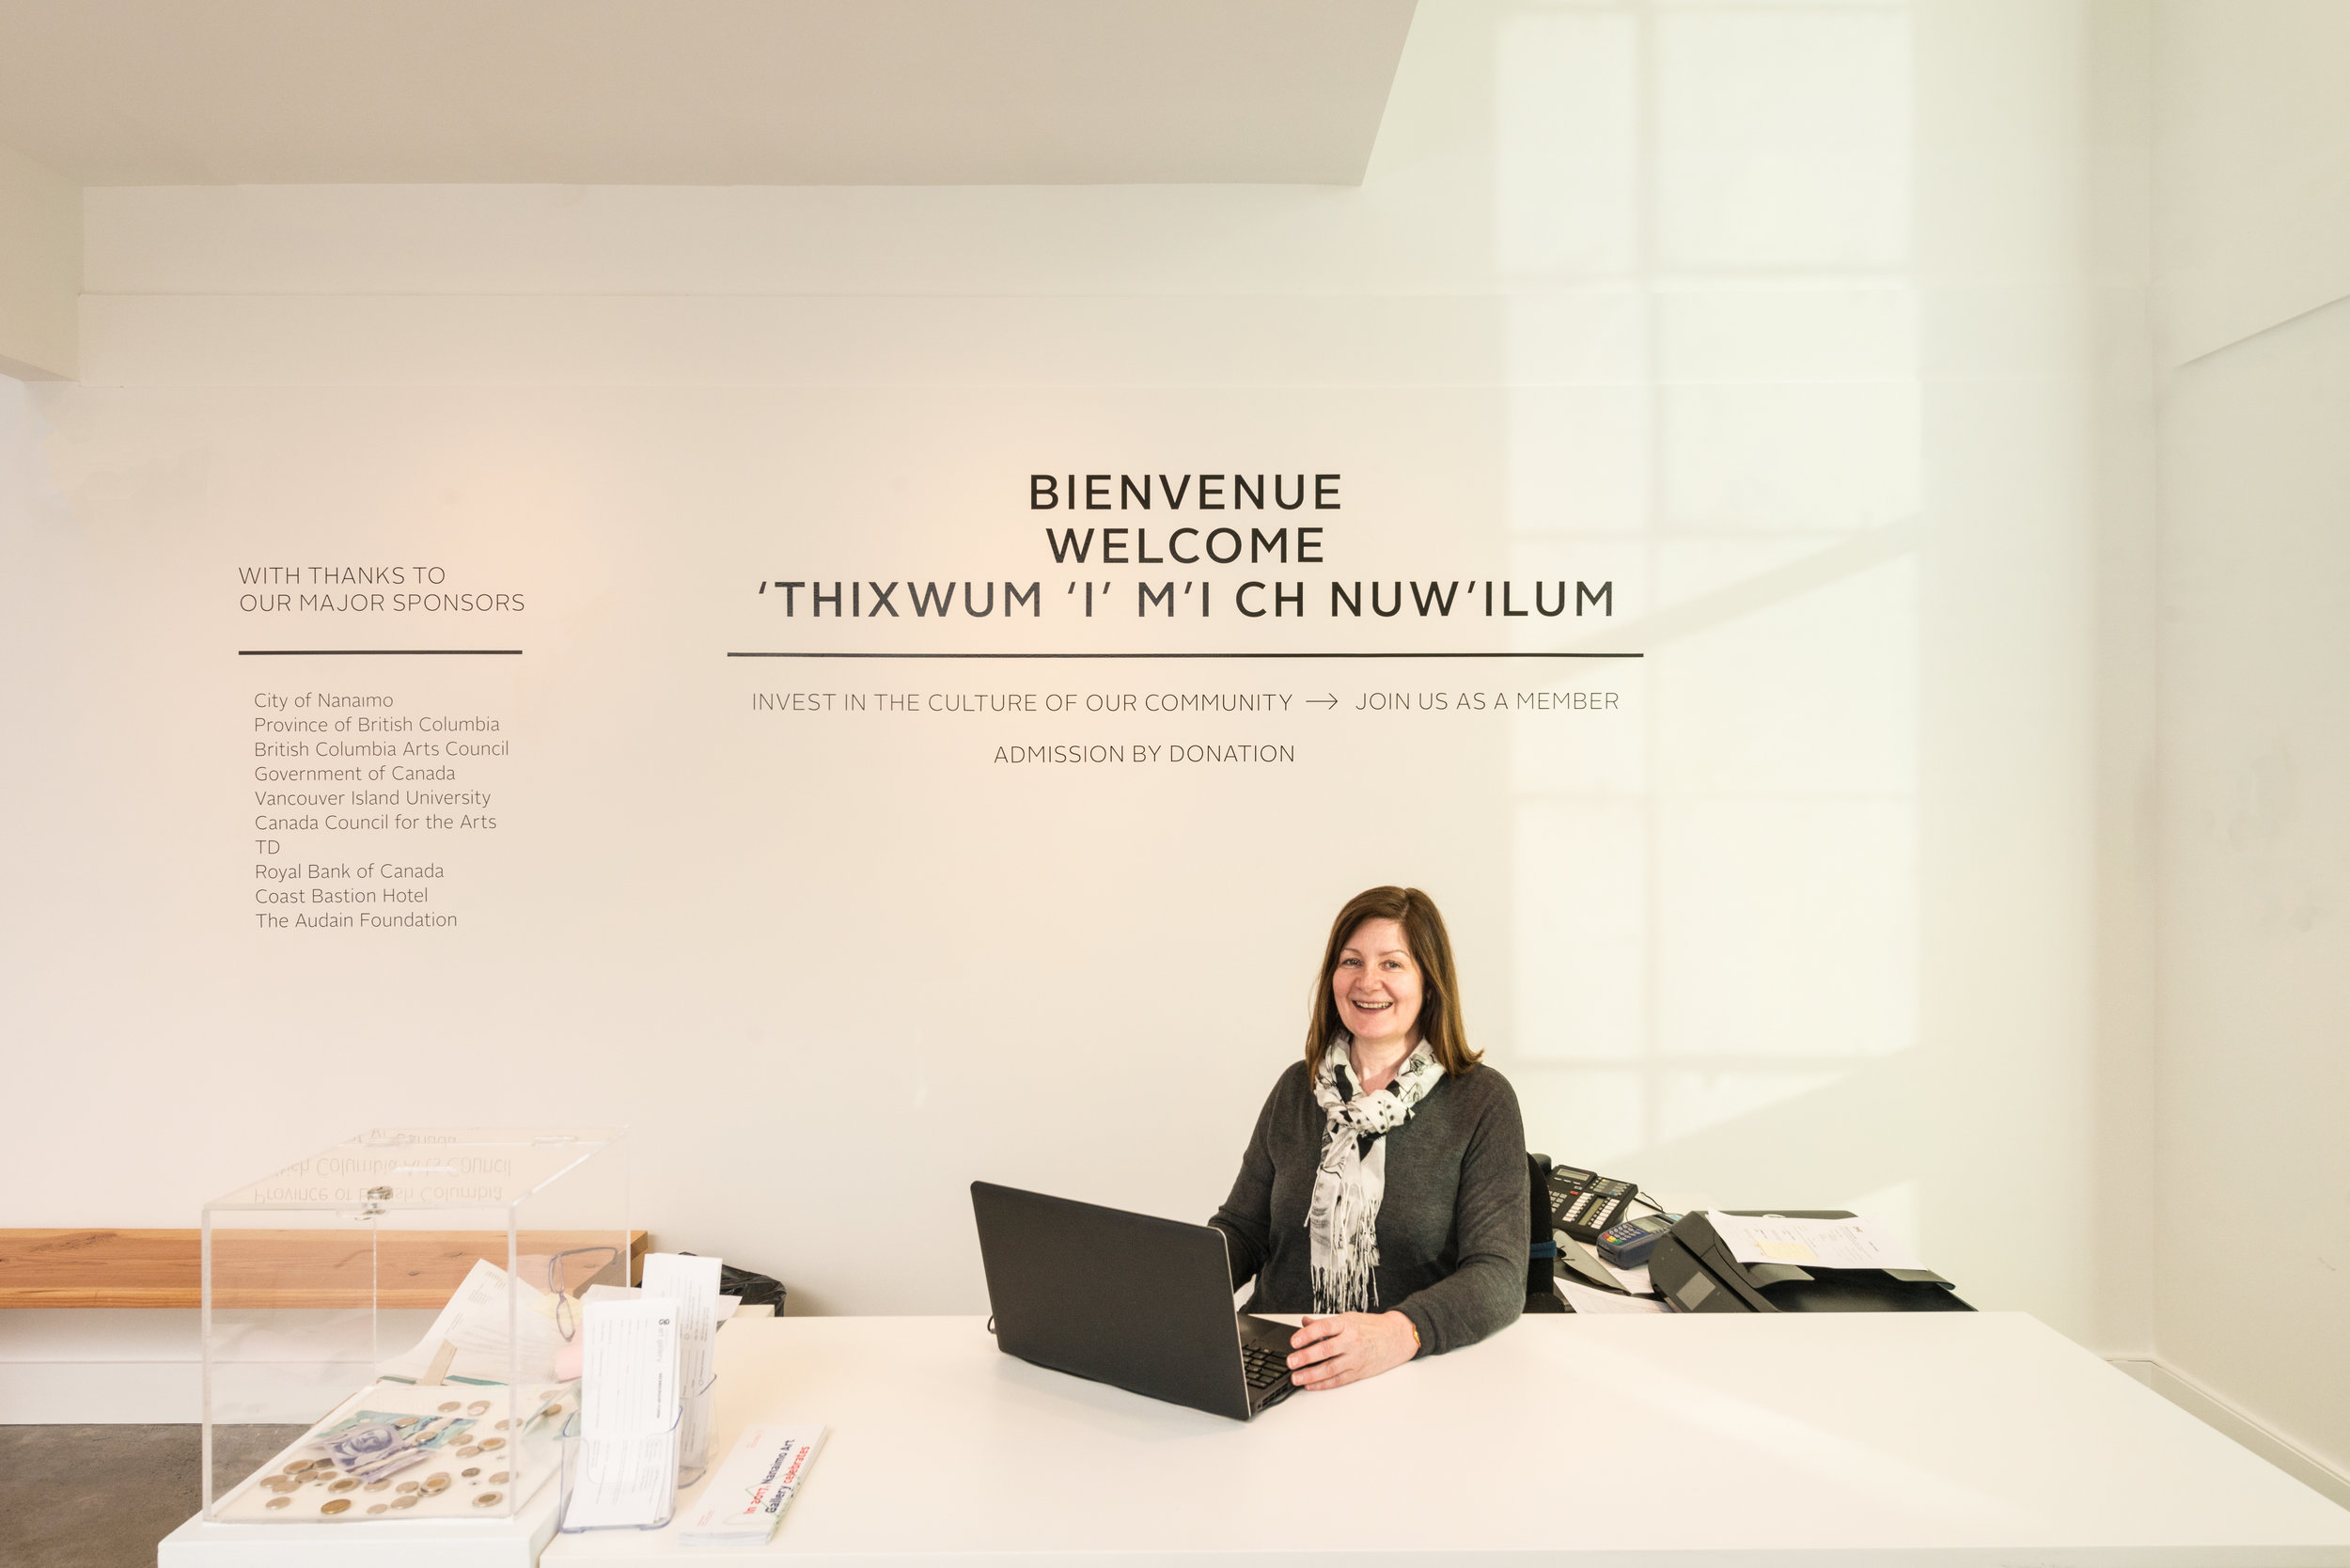 Dawn welcomes you to the new space! =)